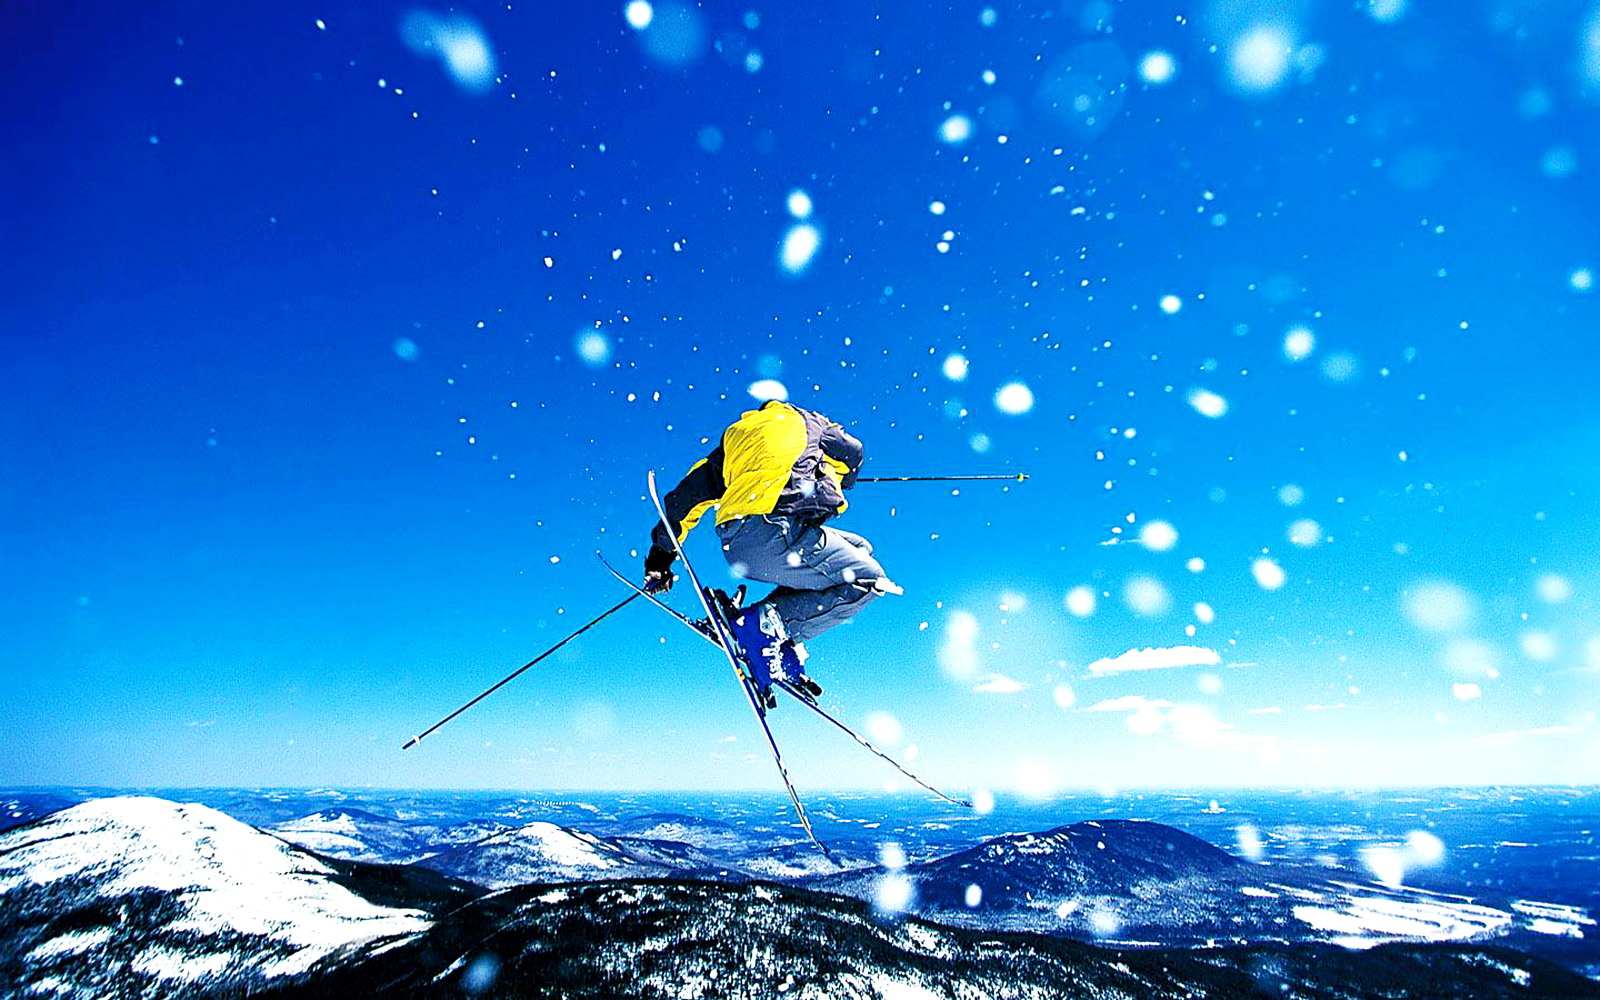 Skiing Winter Sports HD Wallpapers | Desktop Wallpapers